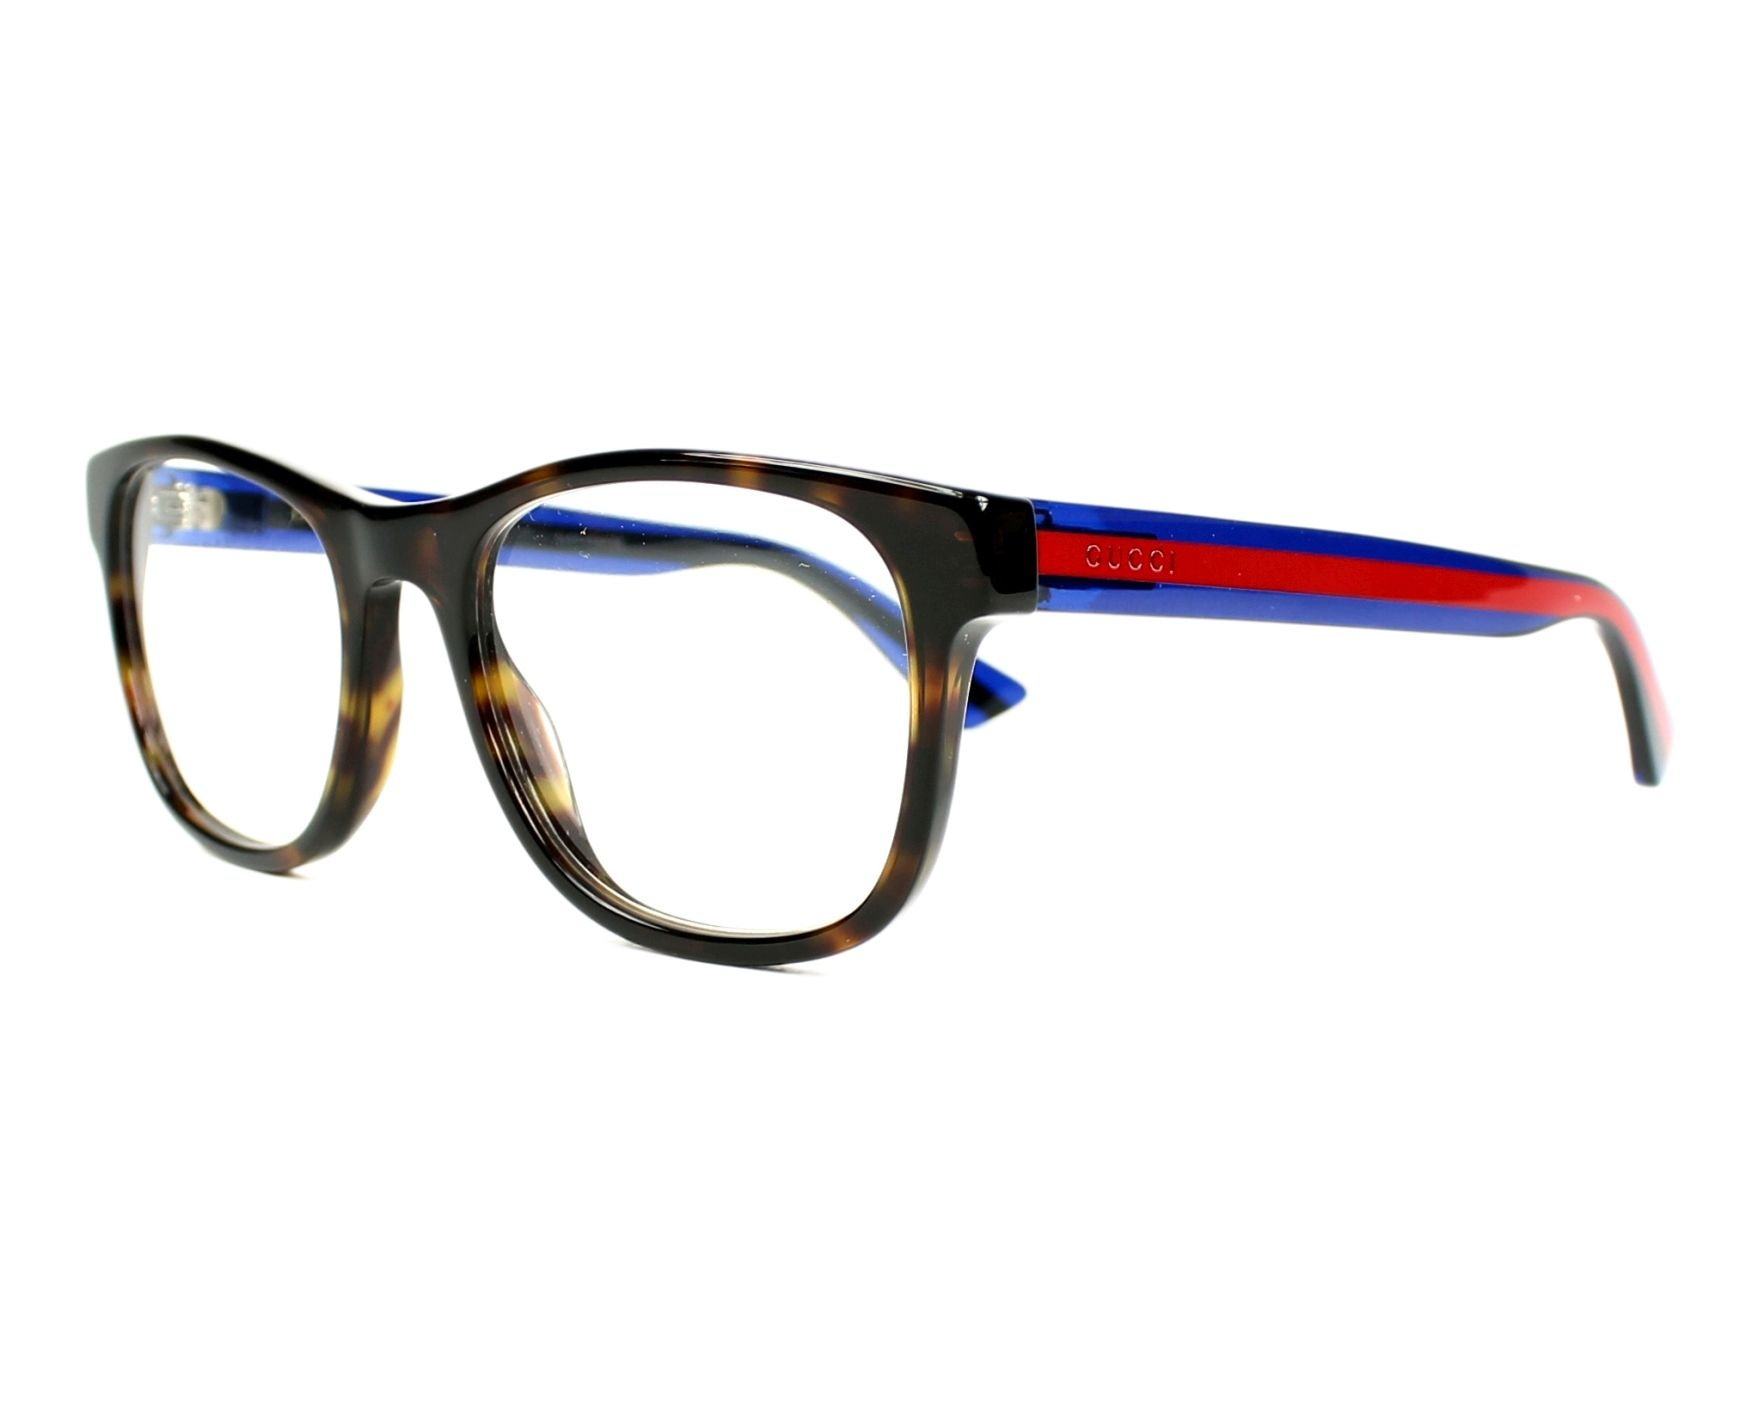 e891aeee3930 Gucci - Buy Gucci eyeglasses online at low prices